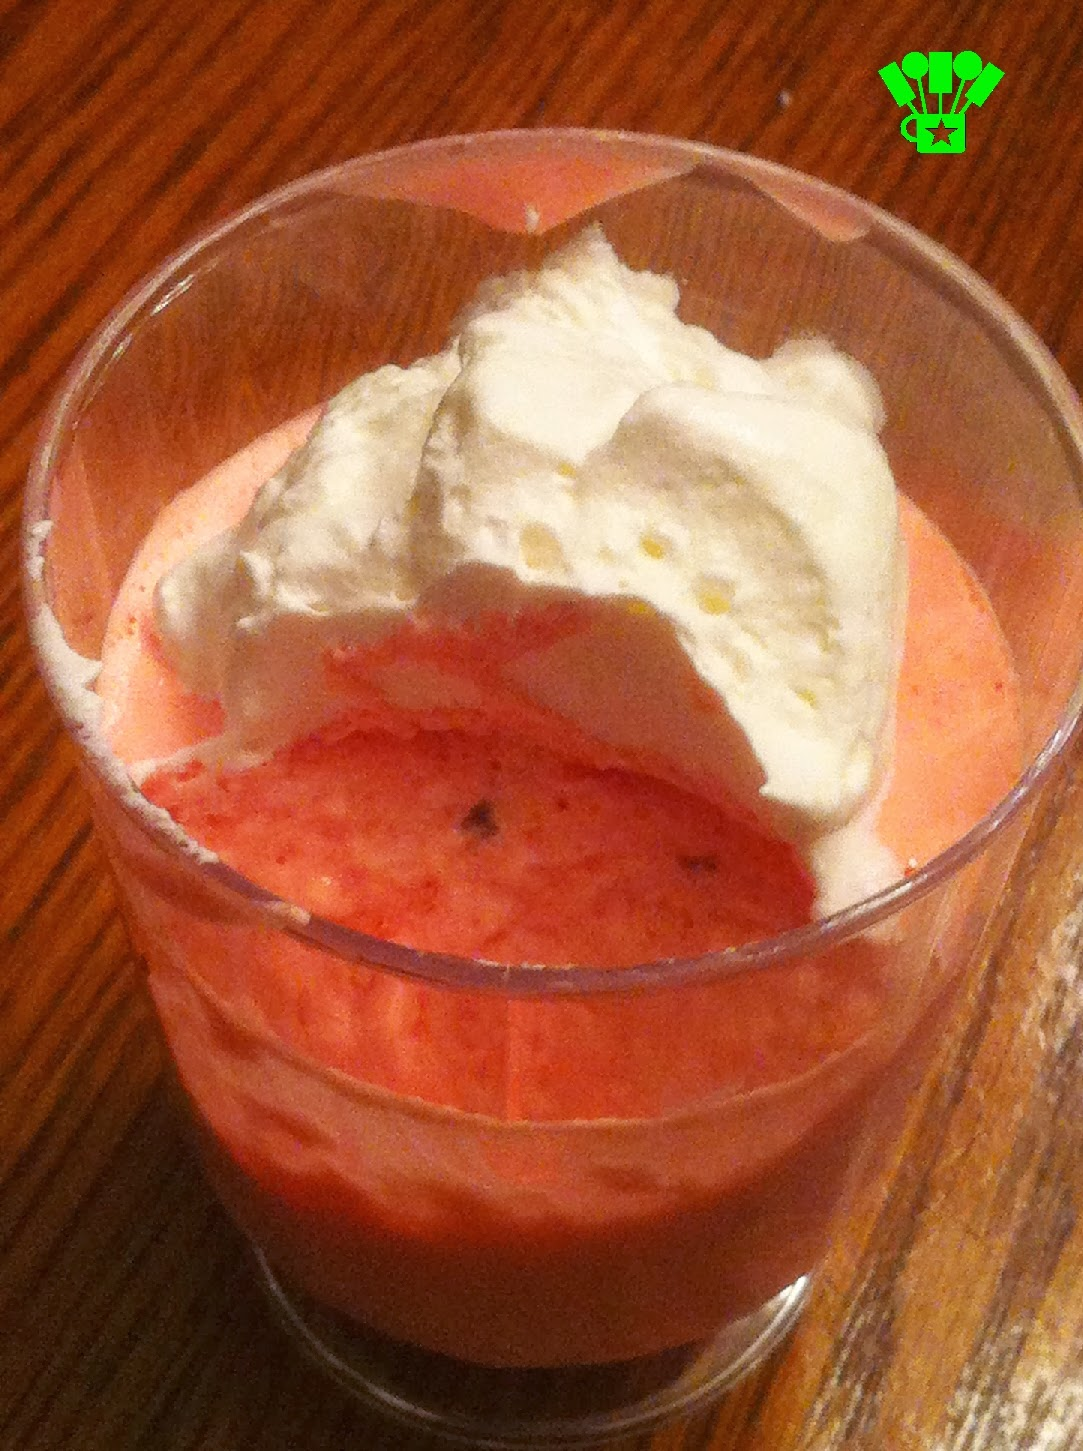 Celebrating the Amity Faction with Strawberry Celebration recipe perfect for your Divergent party.